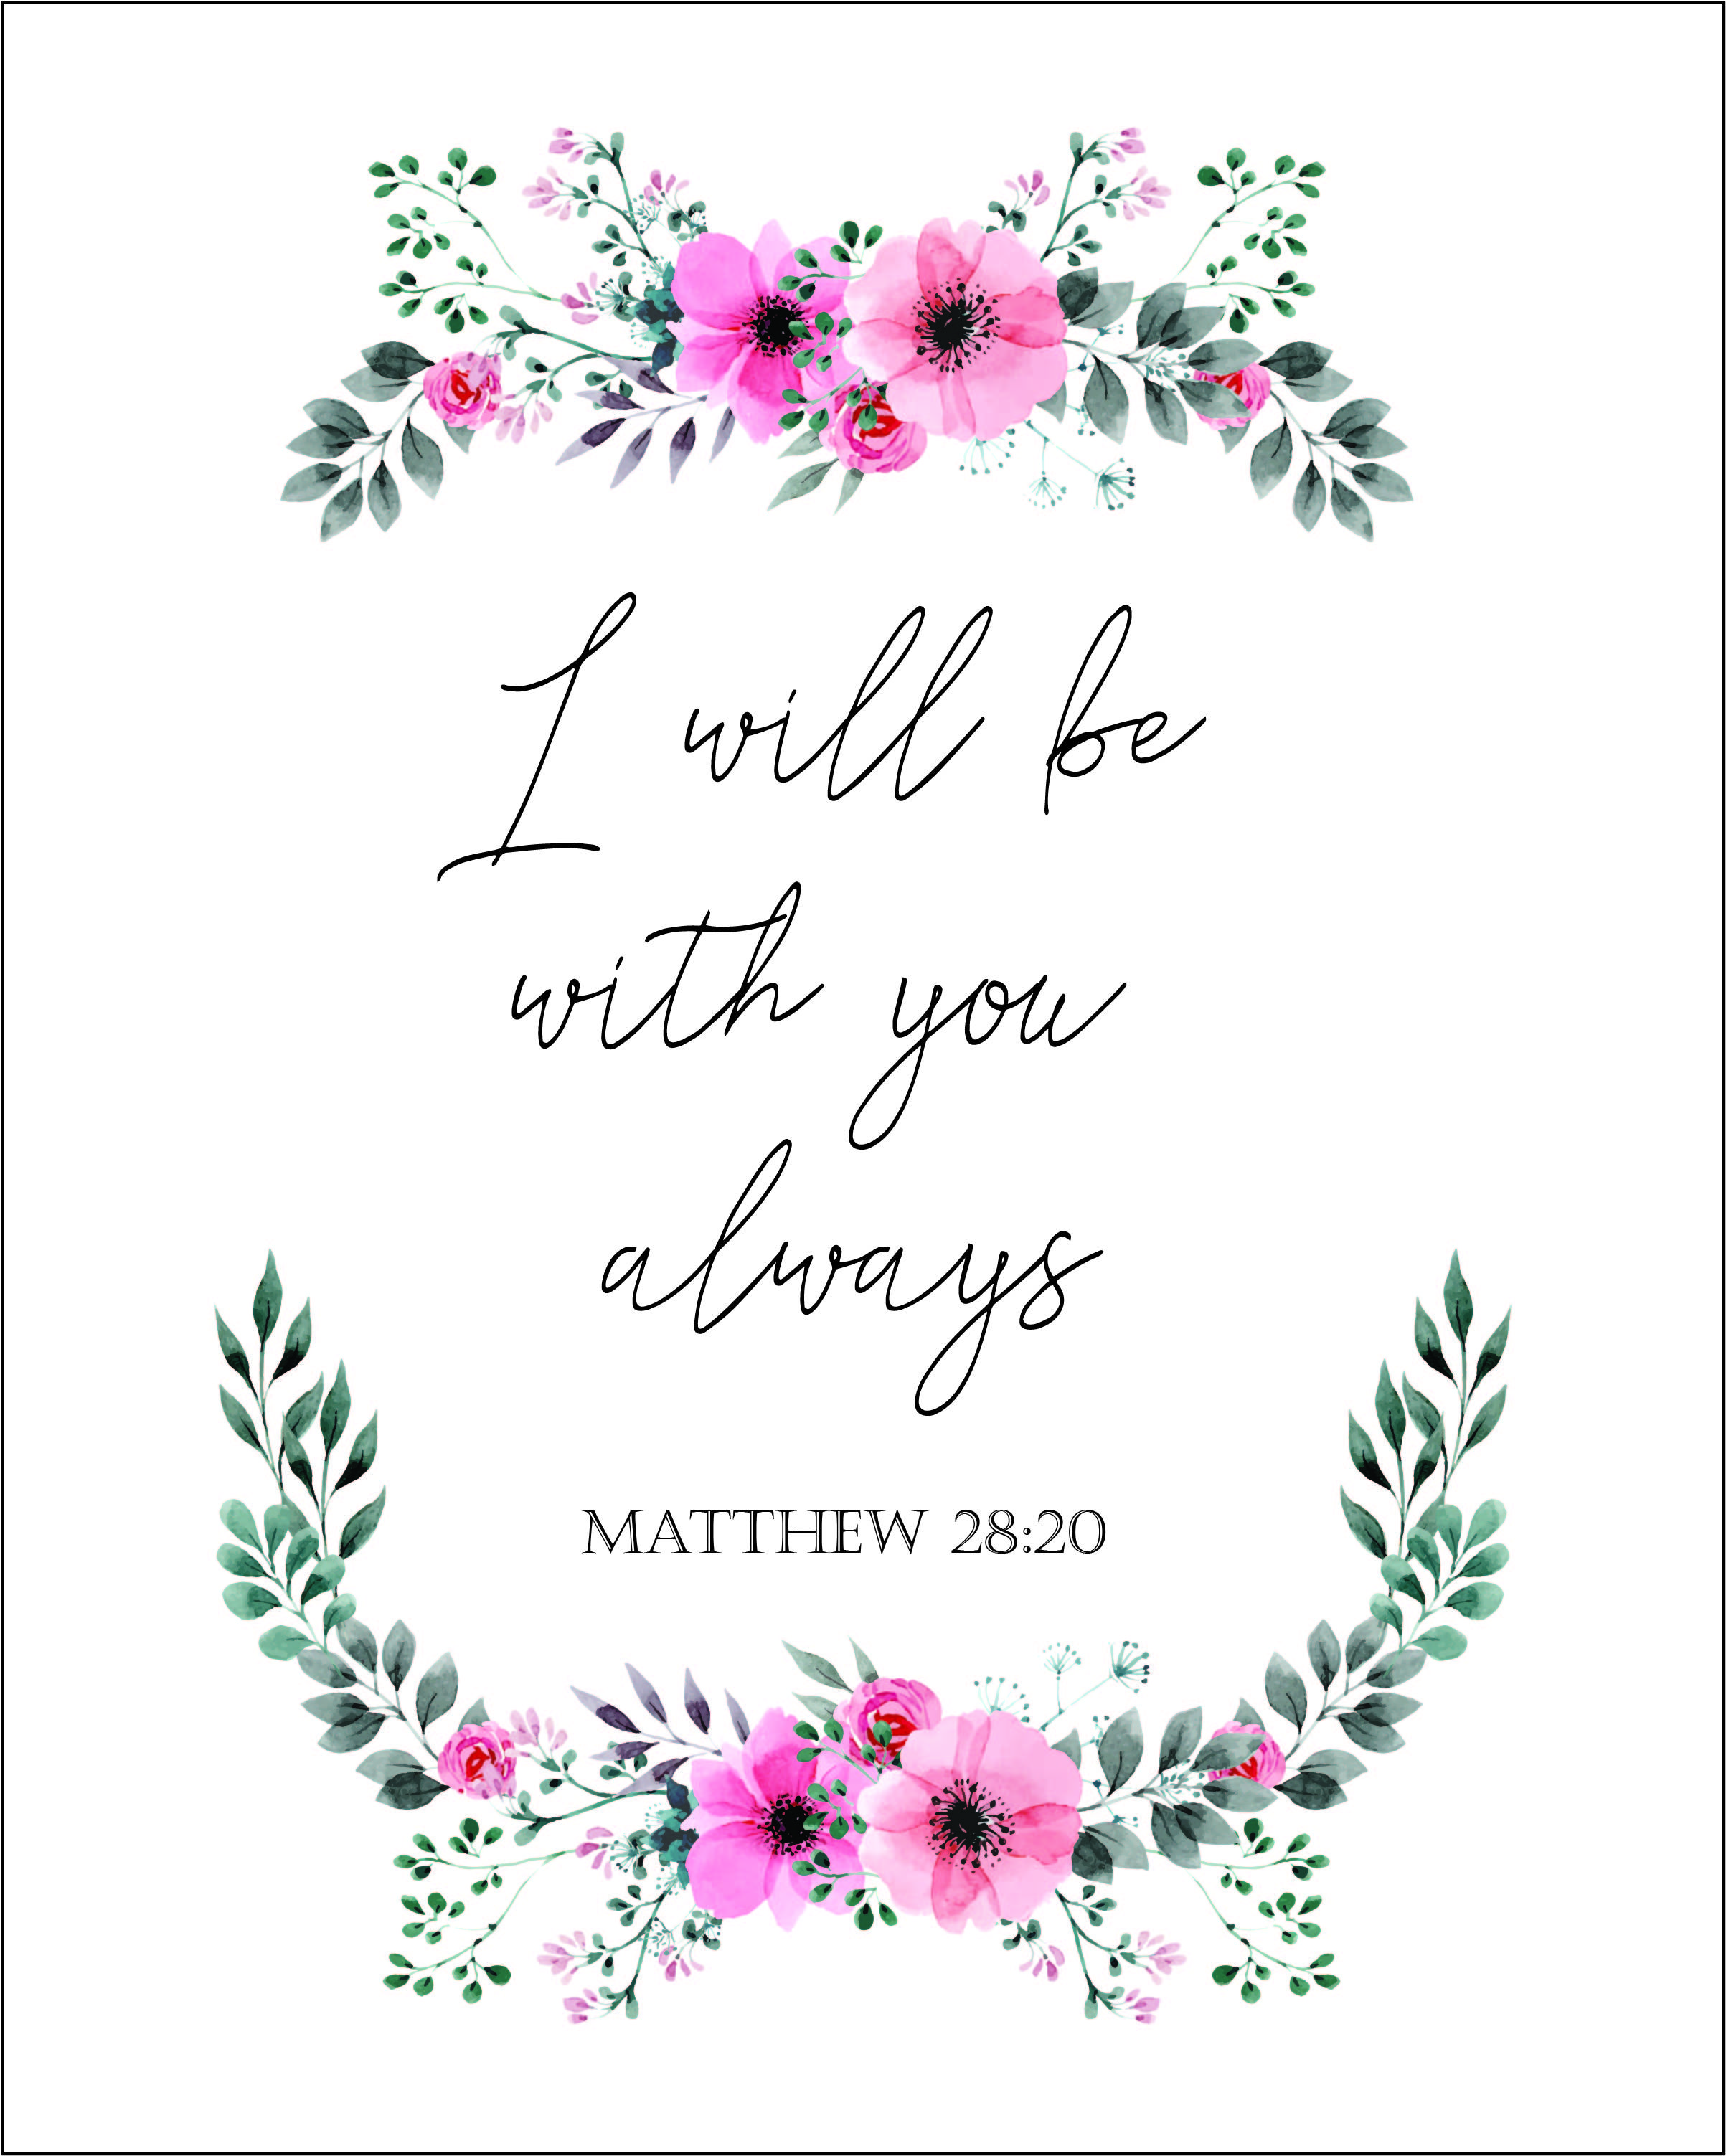 Bible verse free printable i will be with you always